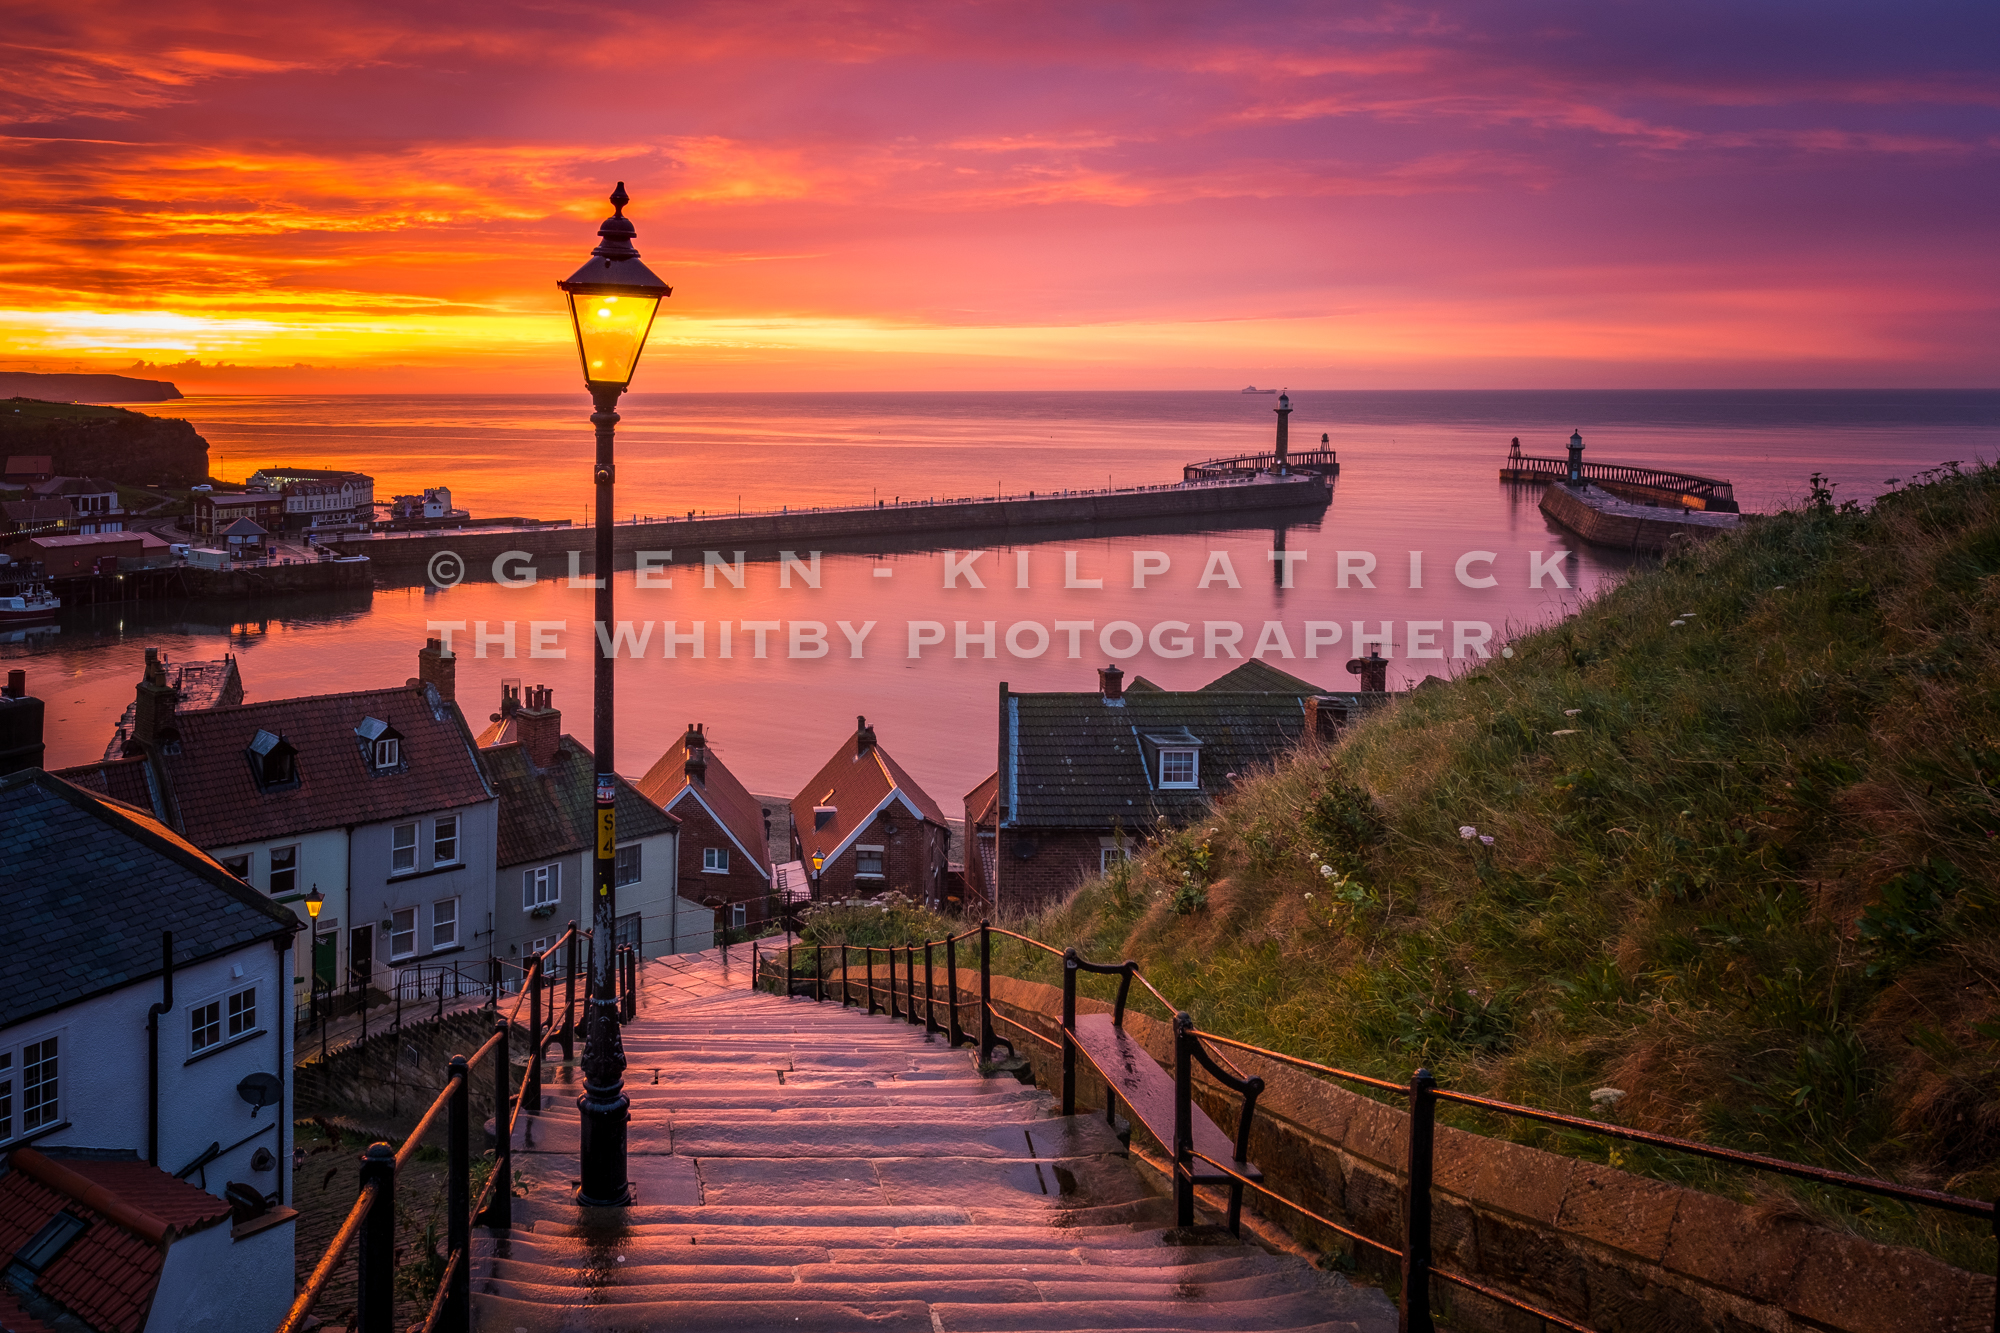 Never Say Never Whitby 199 Steps Sunsets Whitby